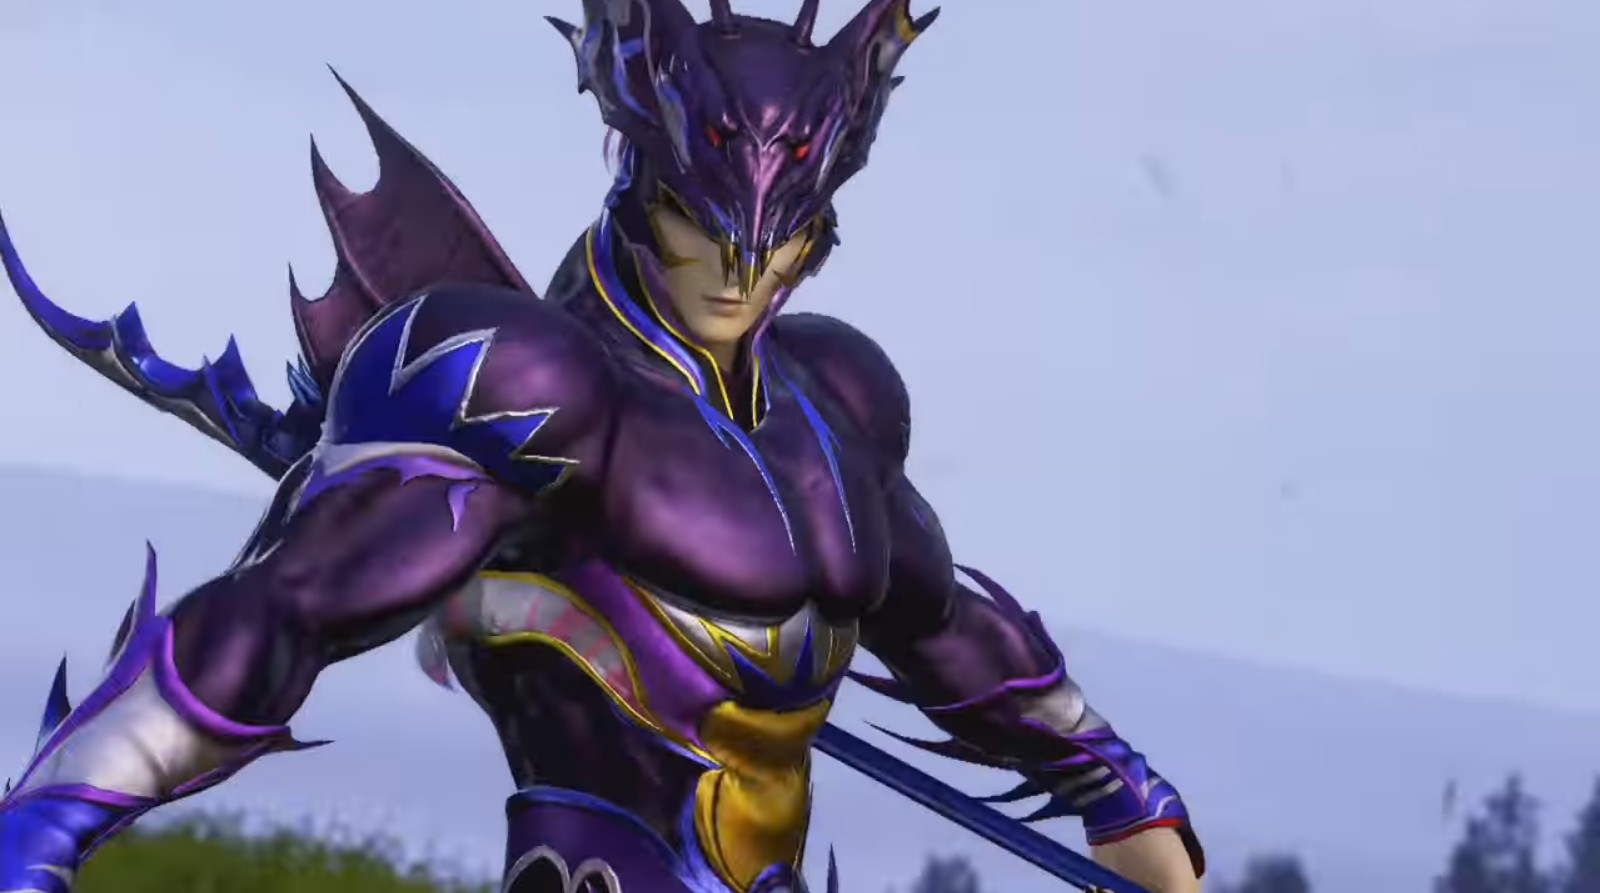 Dissidia Final Fantasy Arcade Kain Highwind